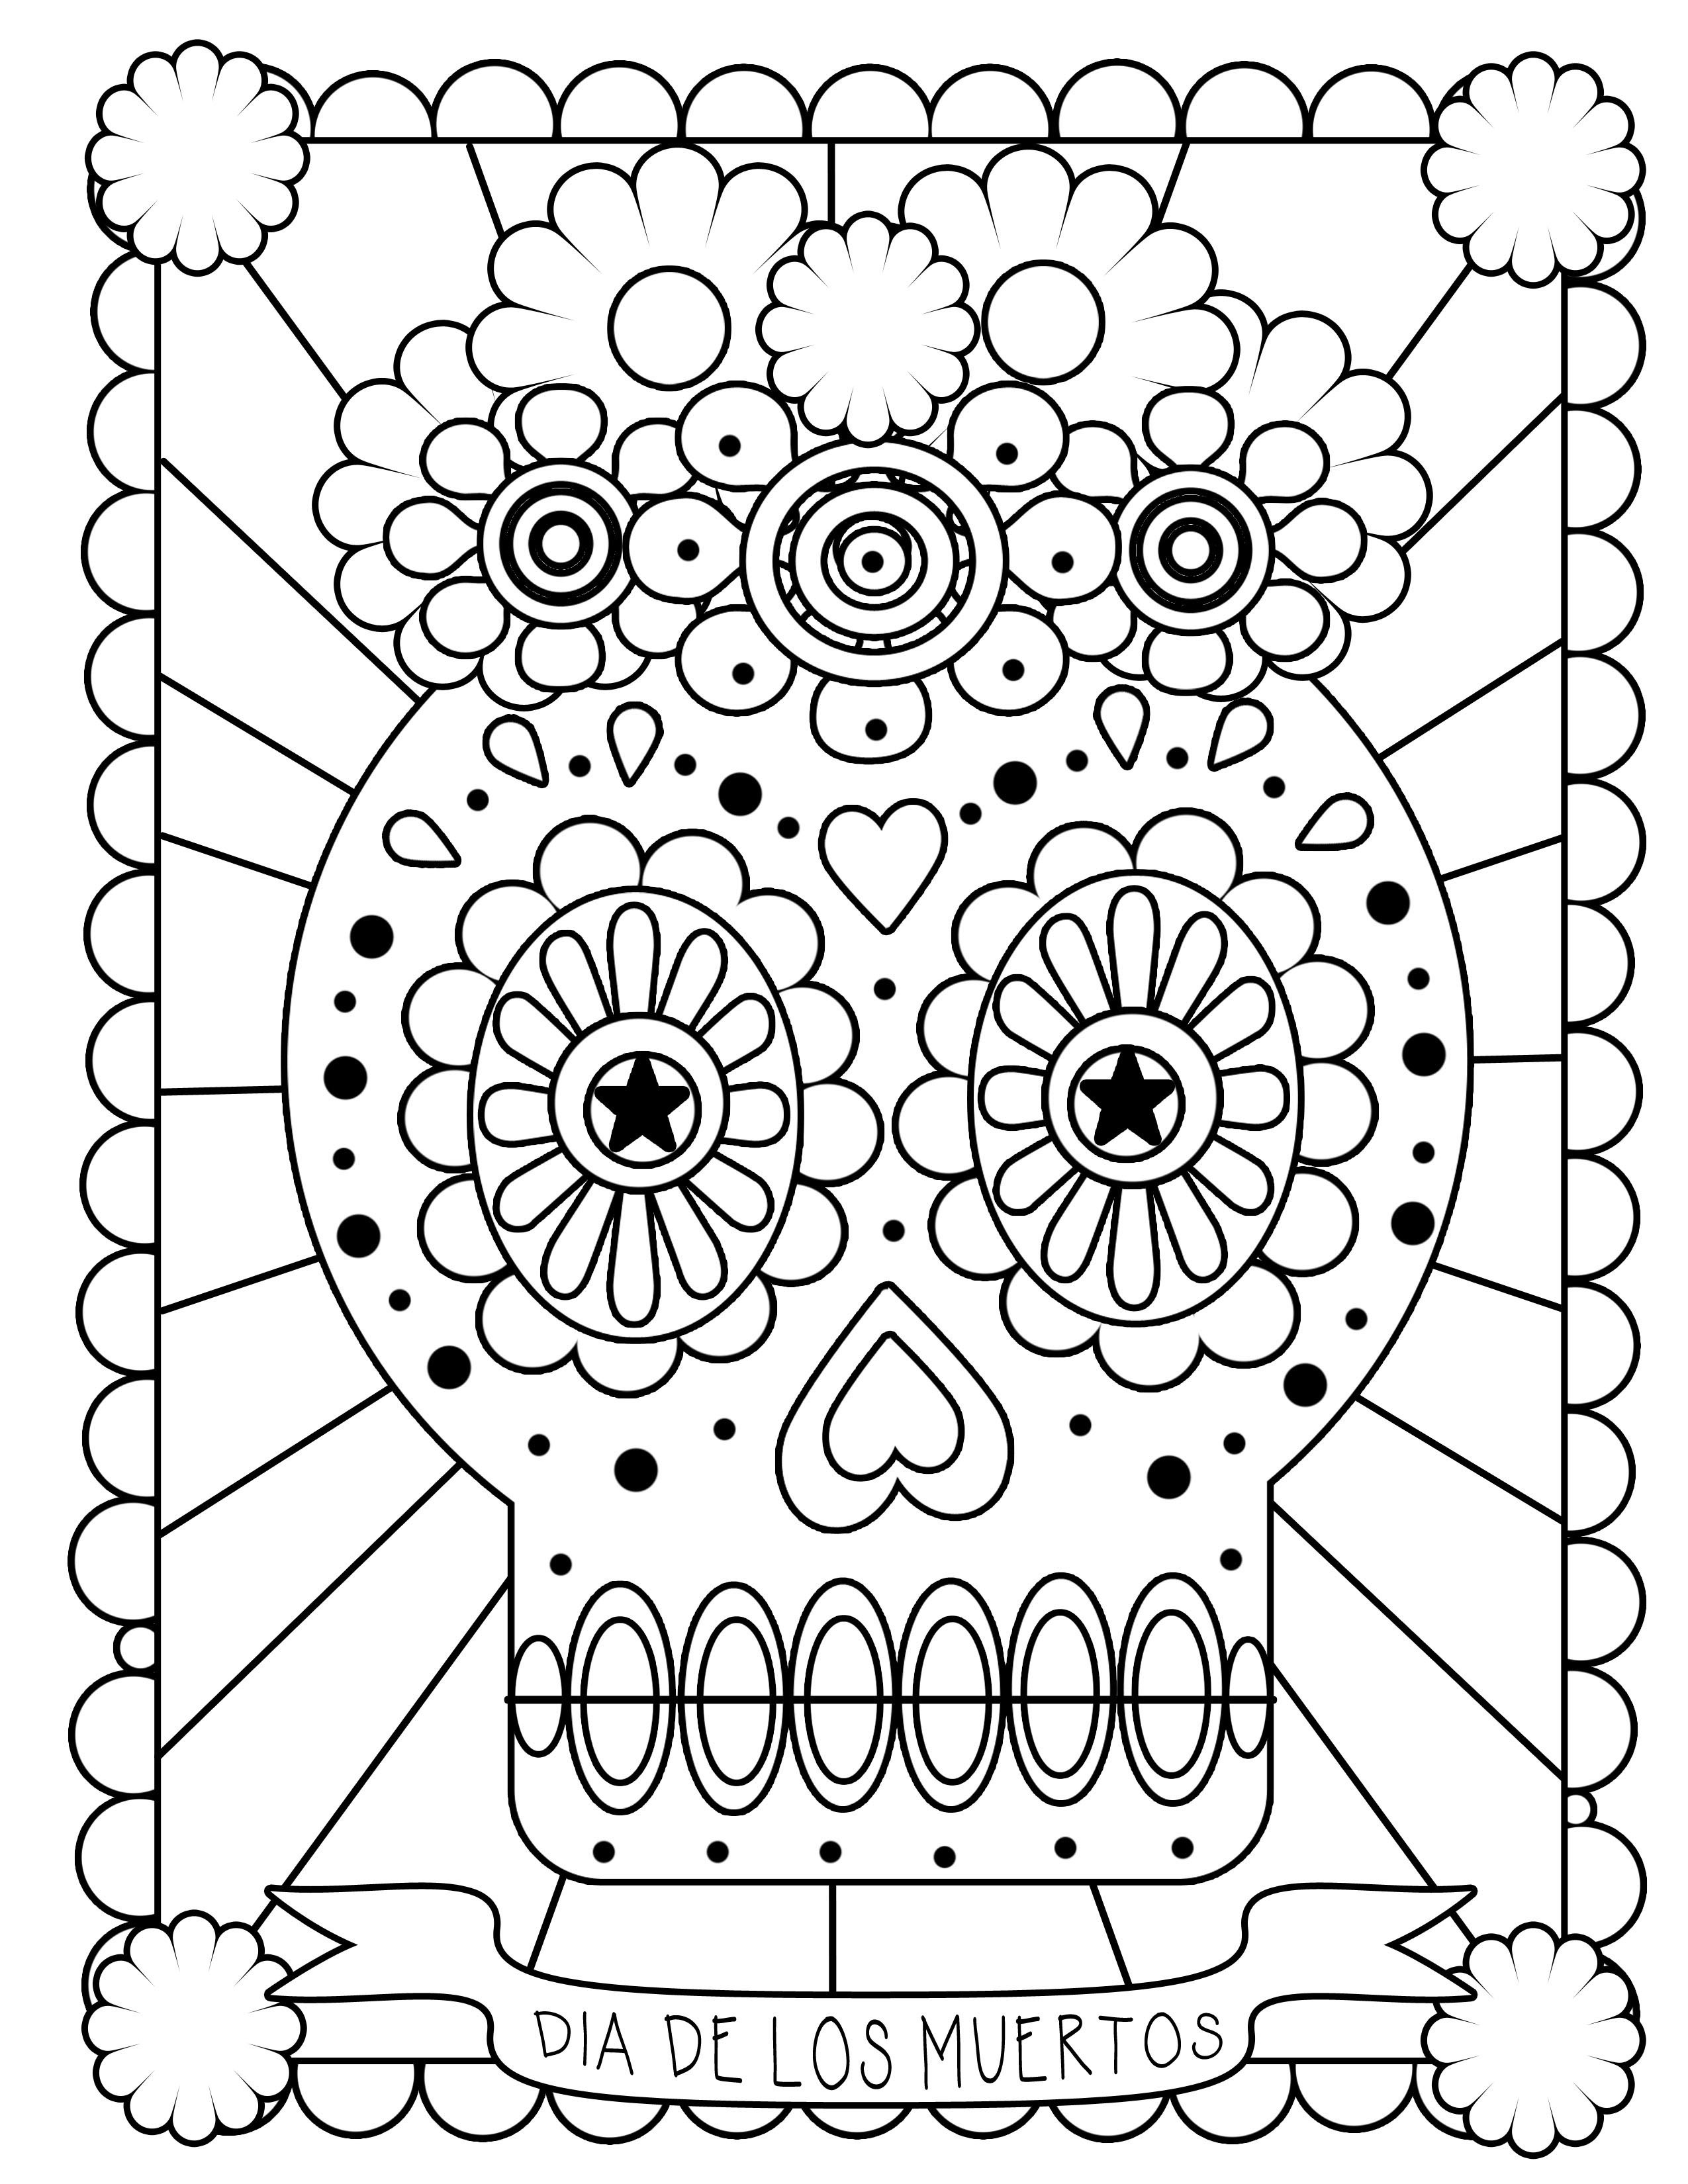 Free Printable Day Of The Dead Coloring Pages Best Lovely | Fiscalreform - Free Printable Day Of The Dead Coloring Pages